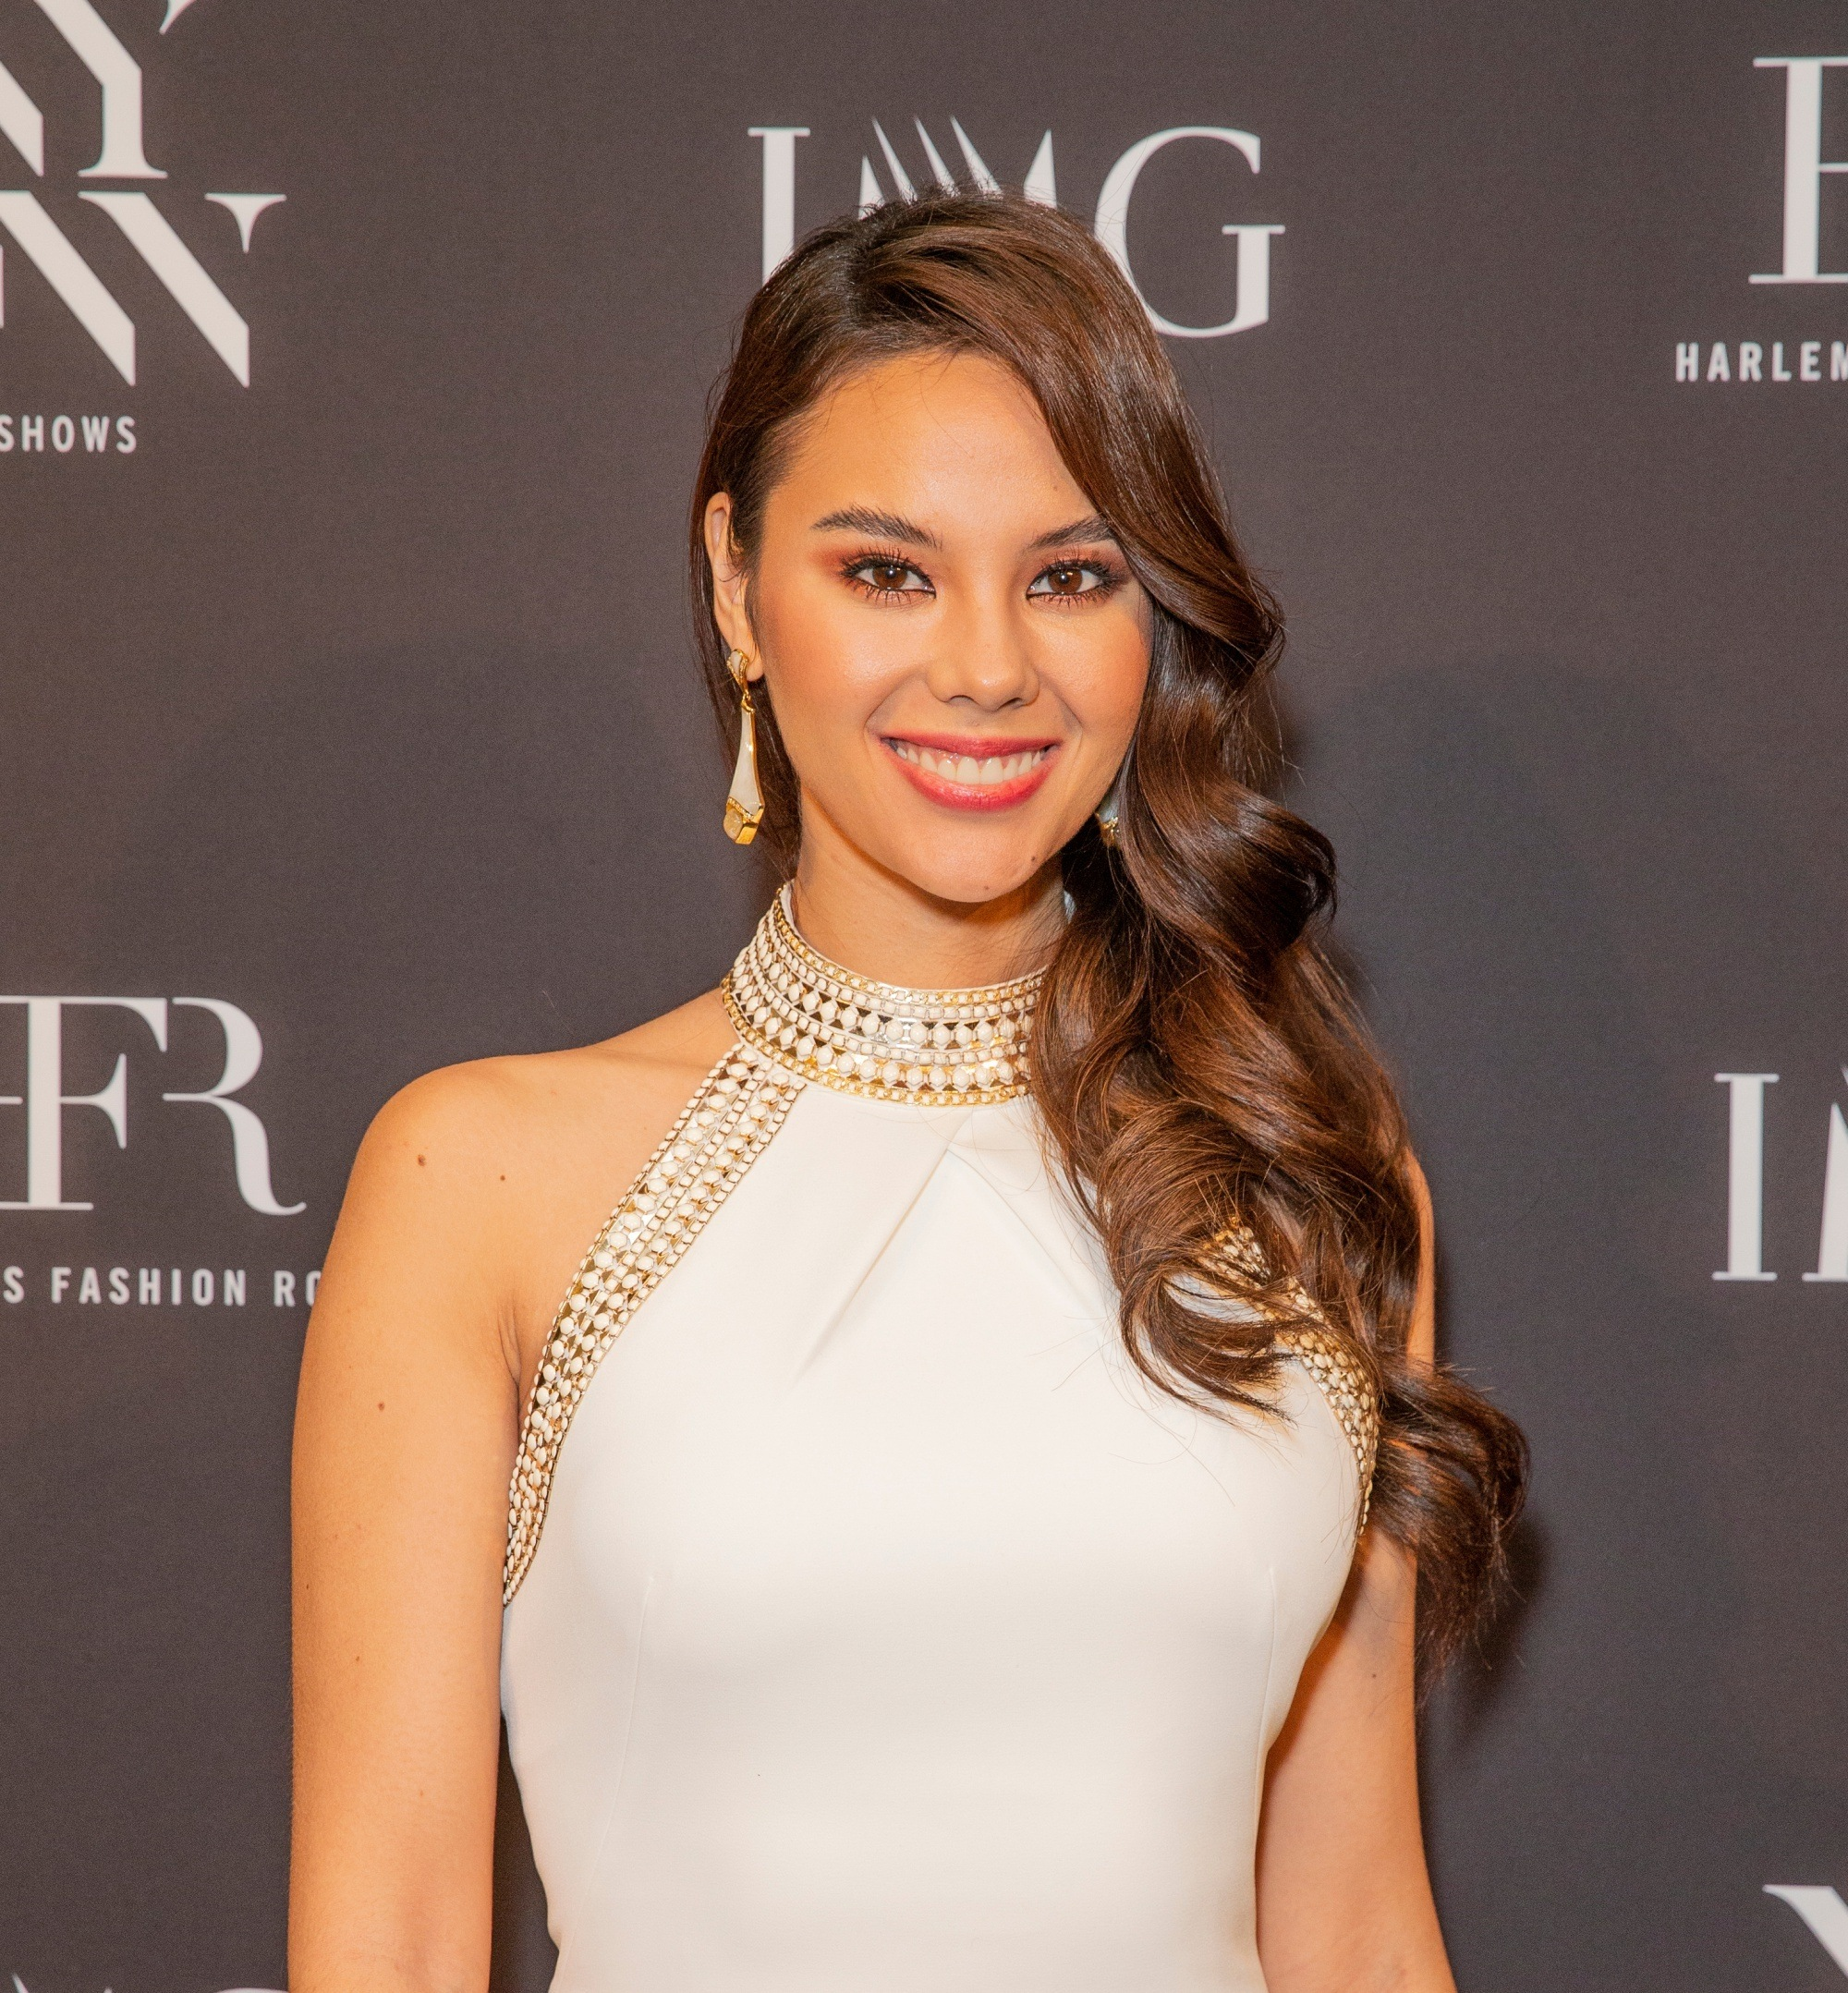 Catriona Gray wearing a white dress with long dark wavy hair